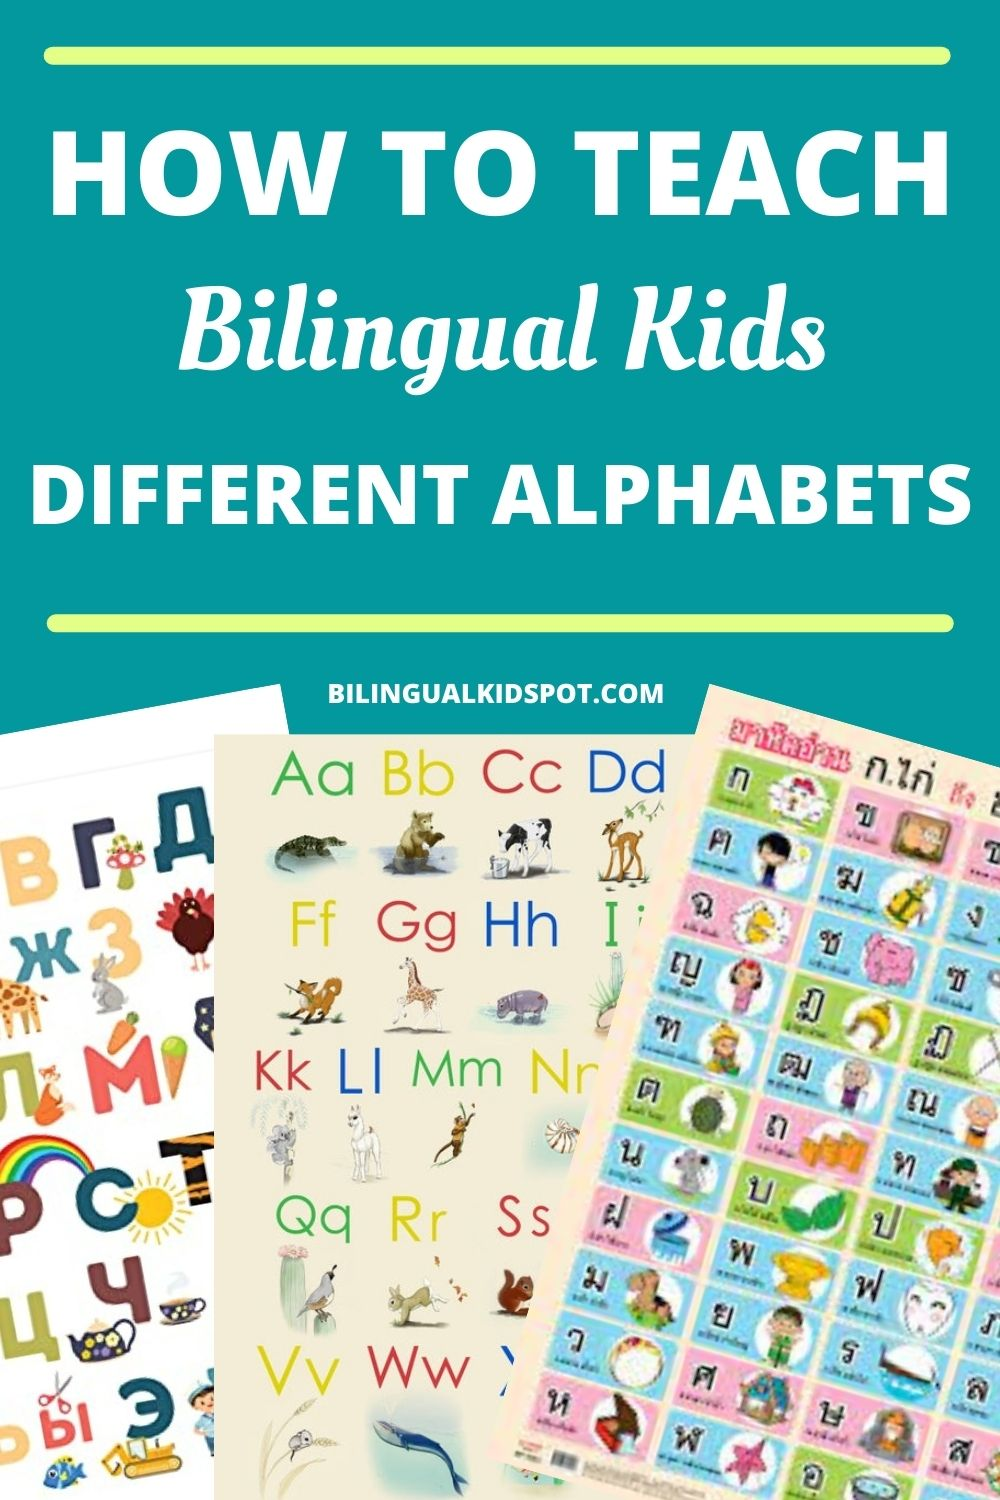 How to teach bilingual kids different alphabets